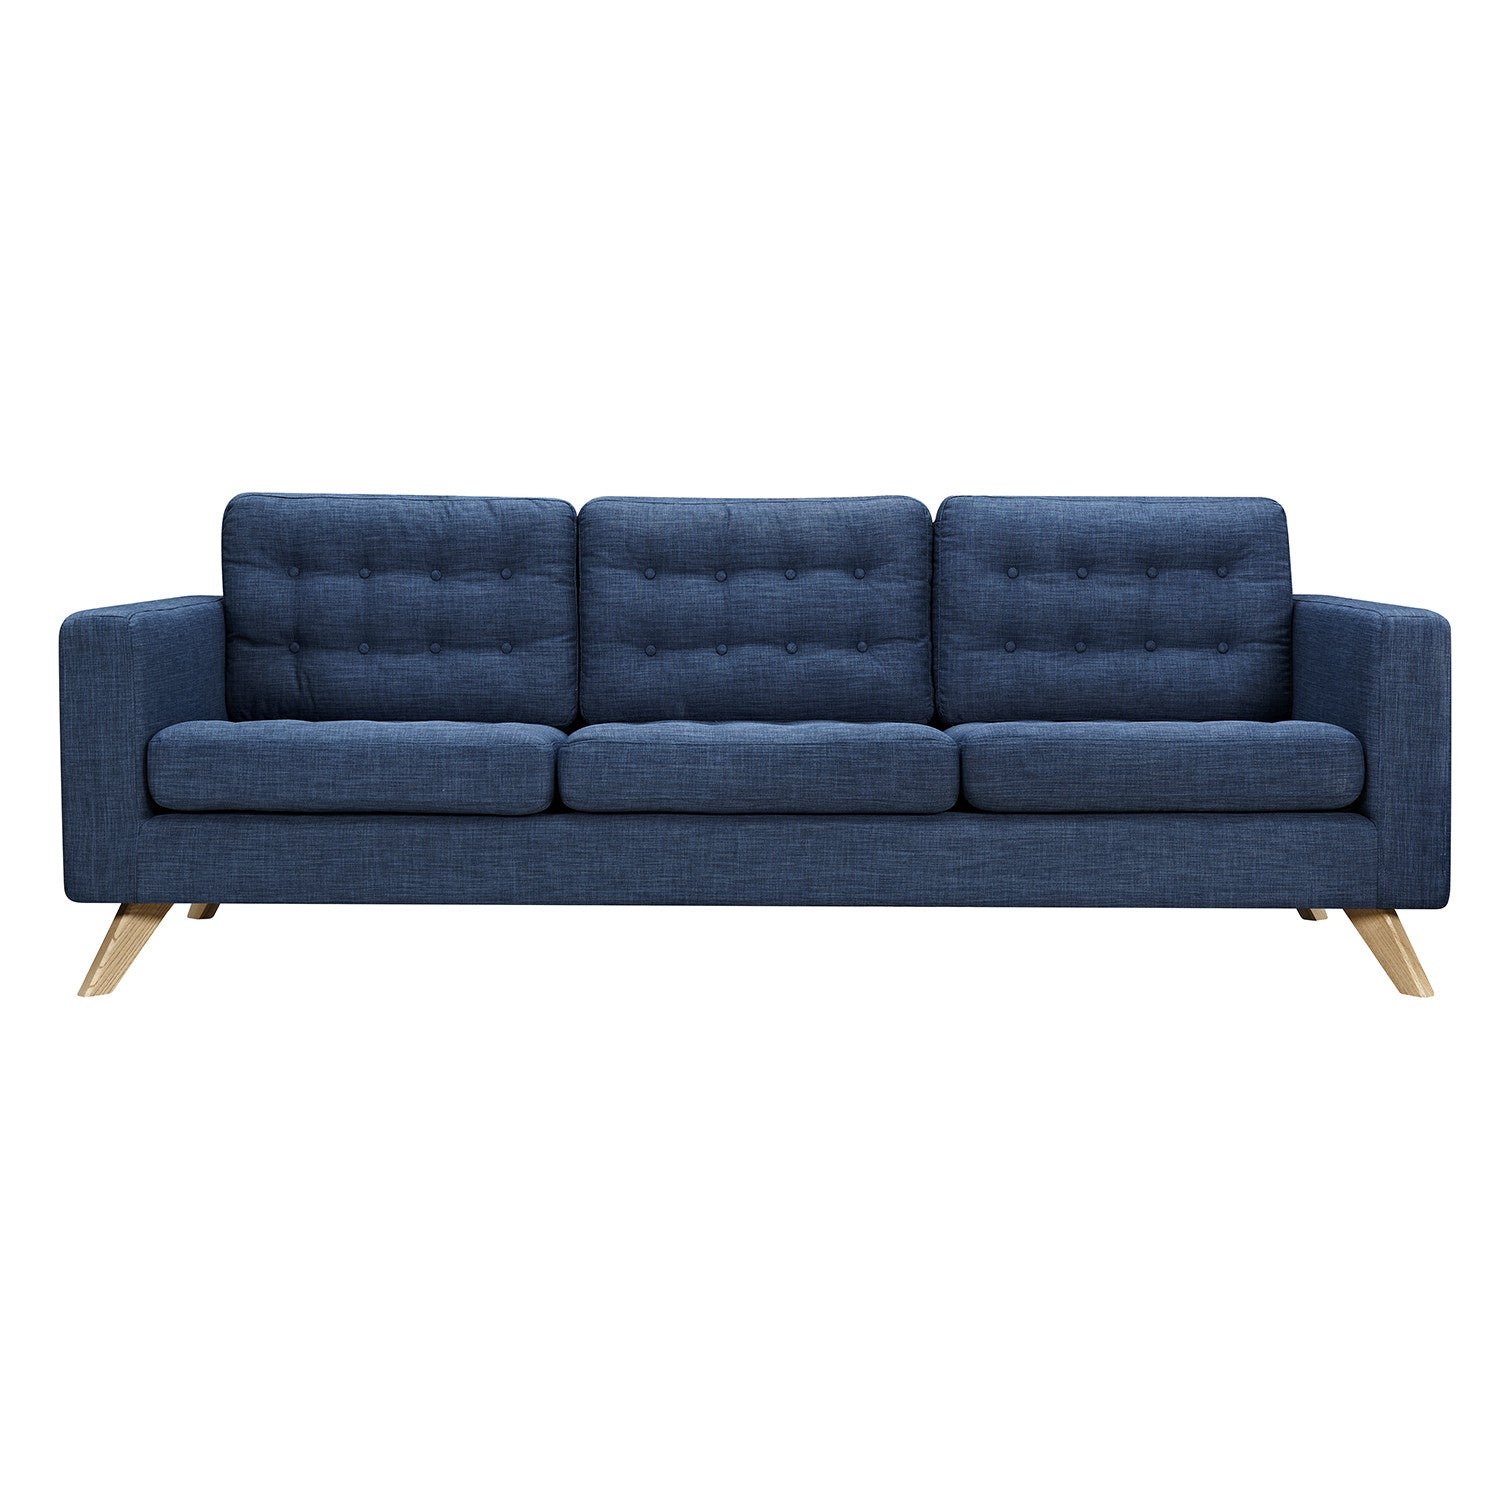 Fine Stone Blue Mina Sofa Natural Nyekoncept Gamerscity Chair Design For Home Gamerscityorg